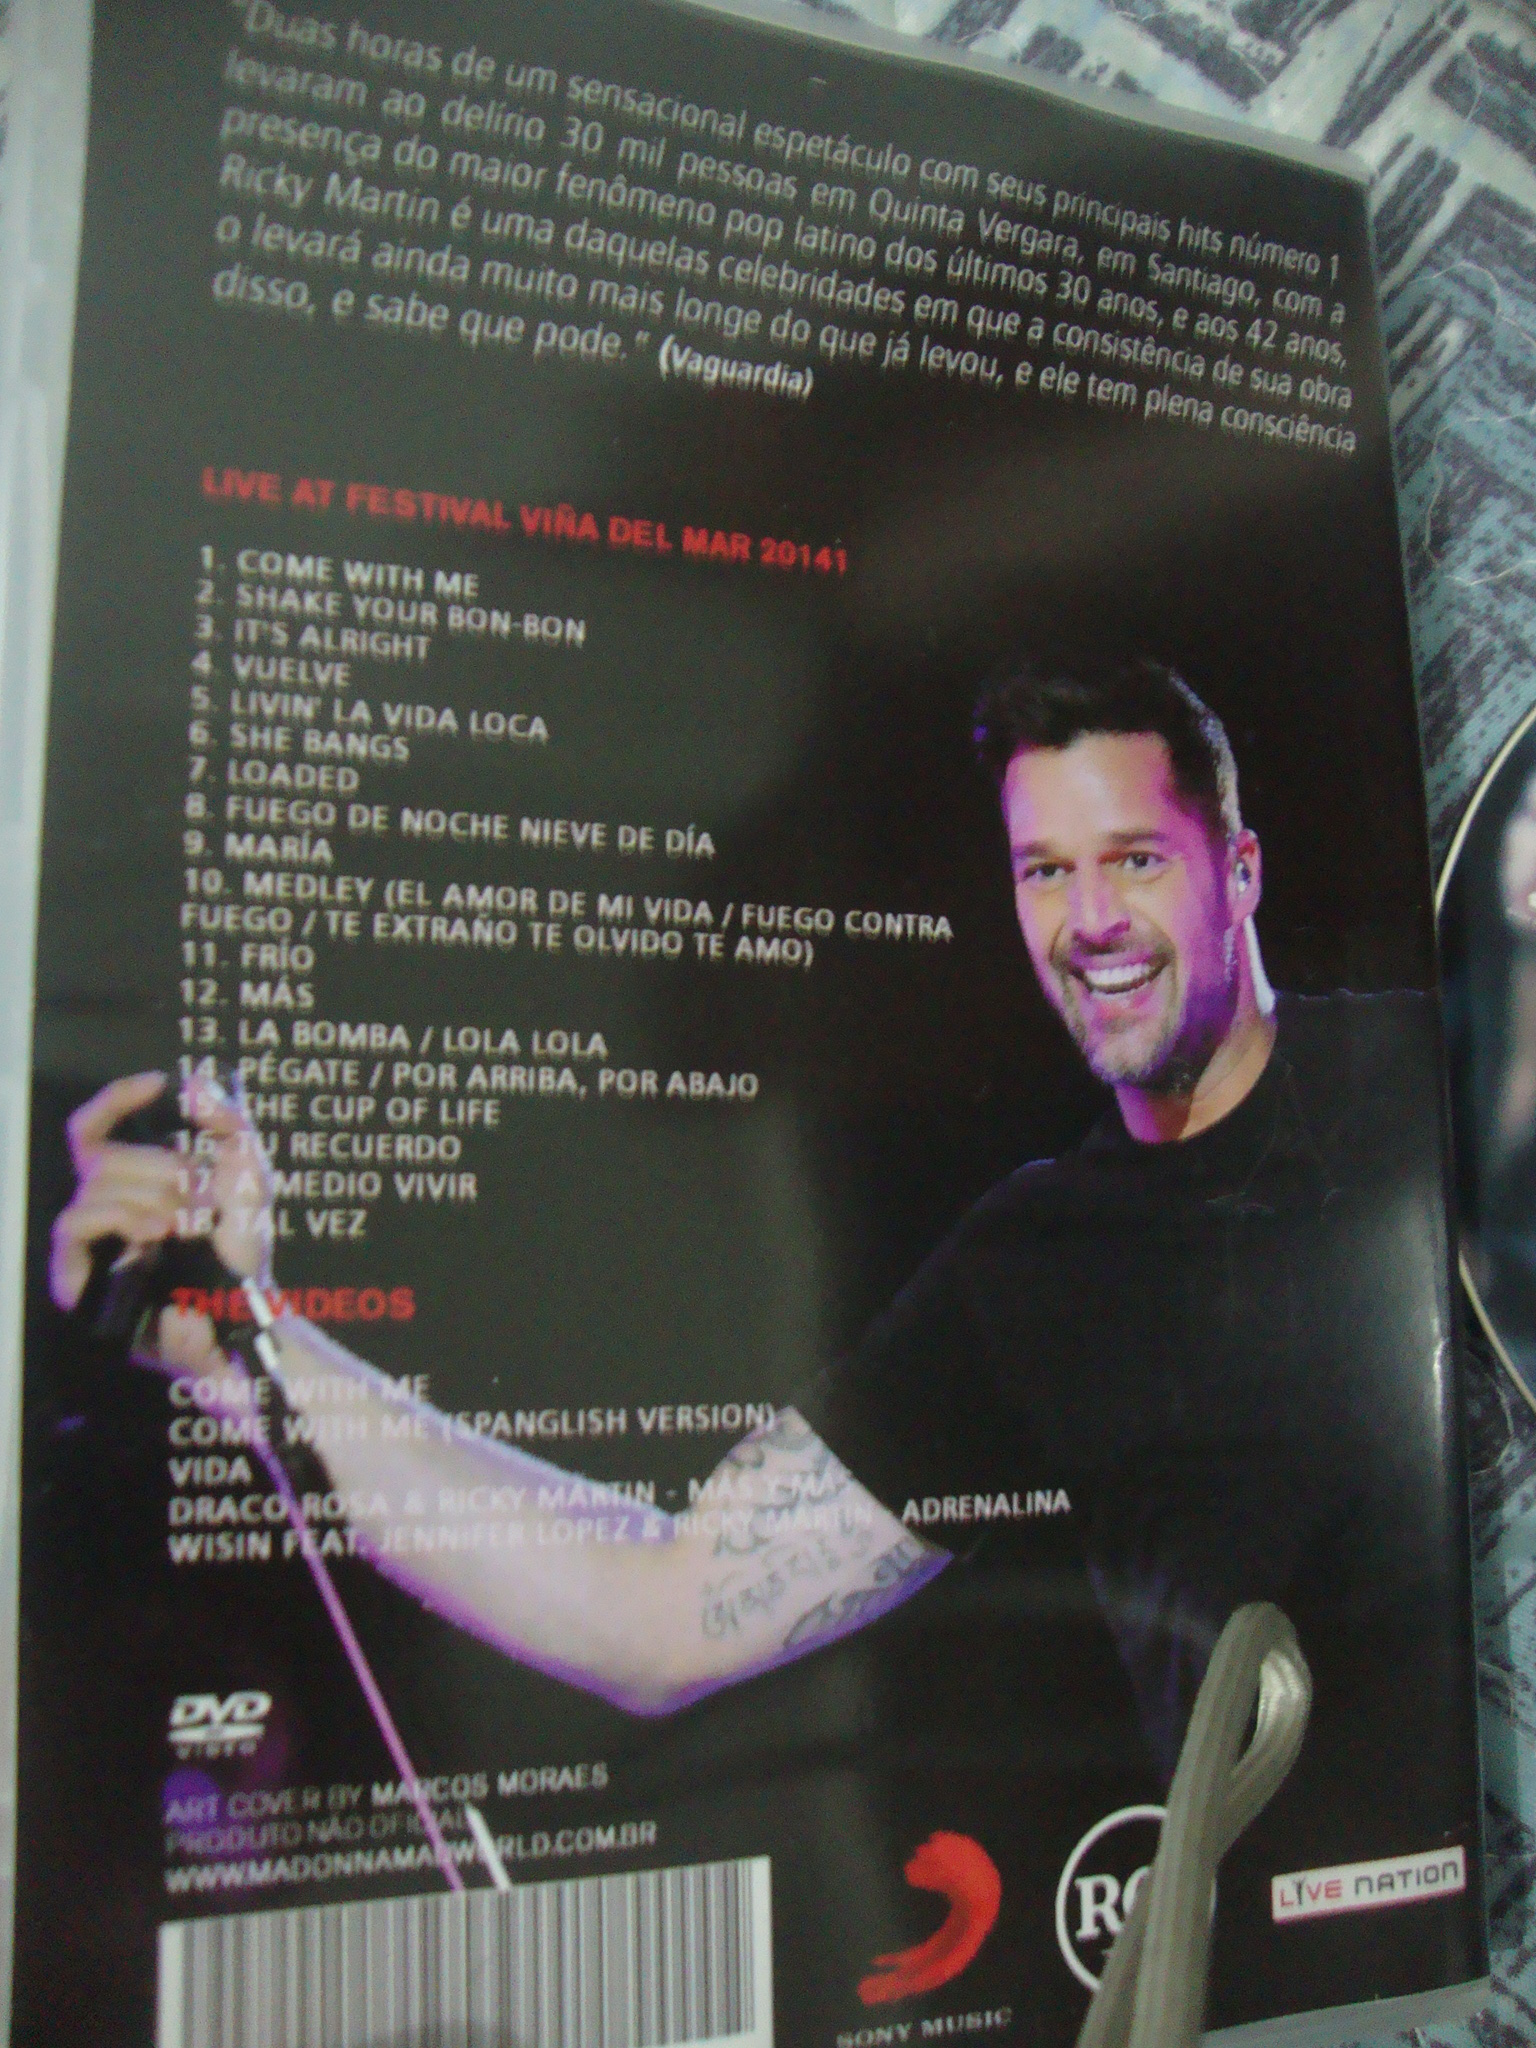 dvd ricky martin festival viña del mar come with me adrenalina3